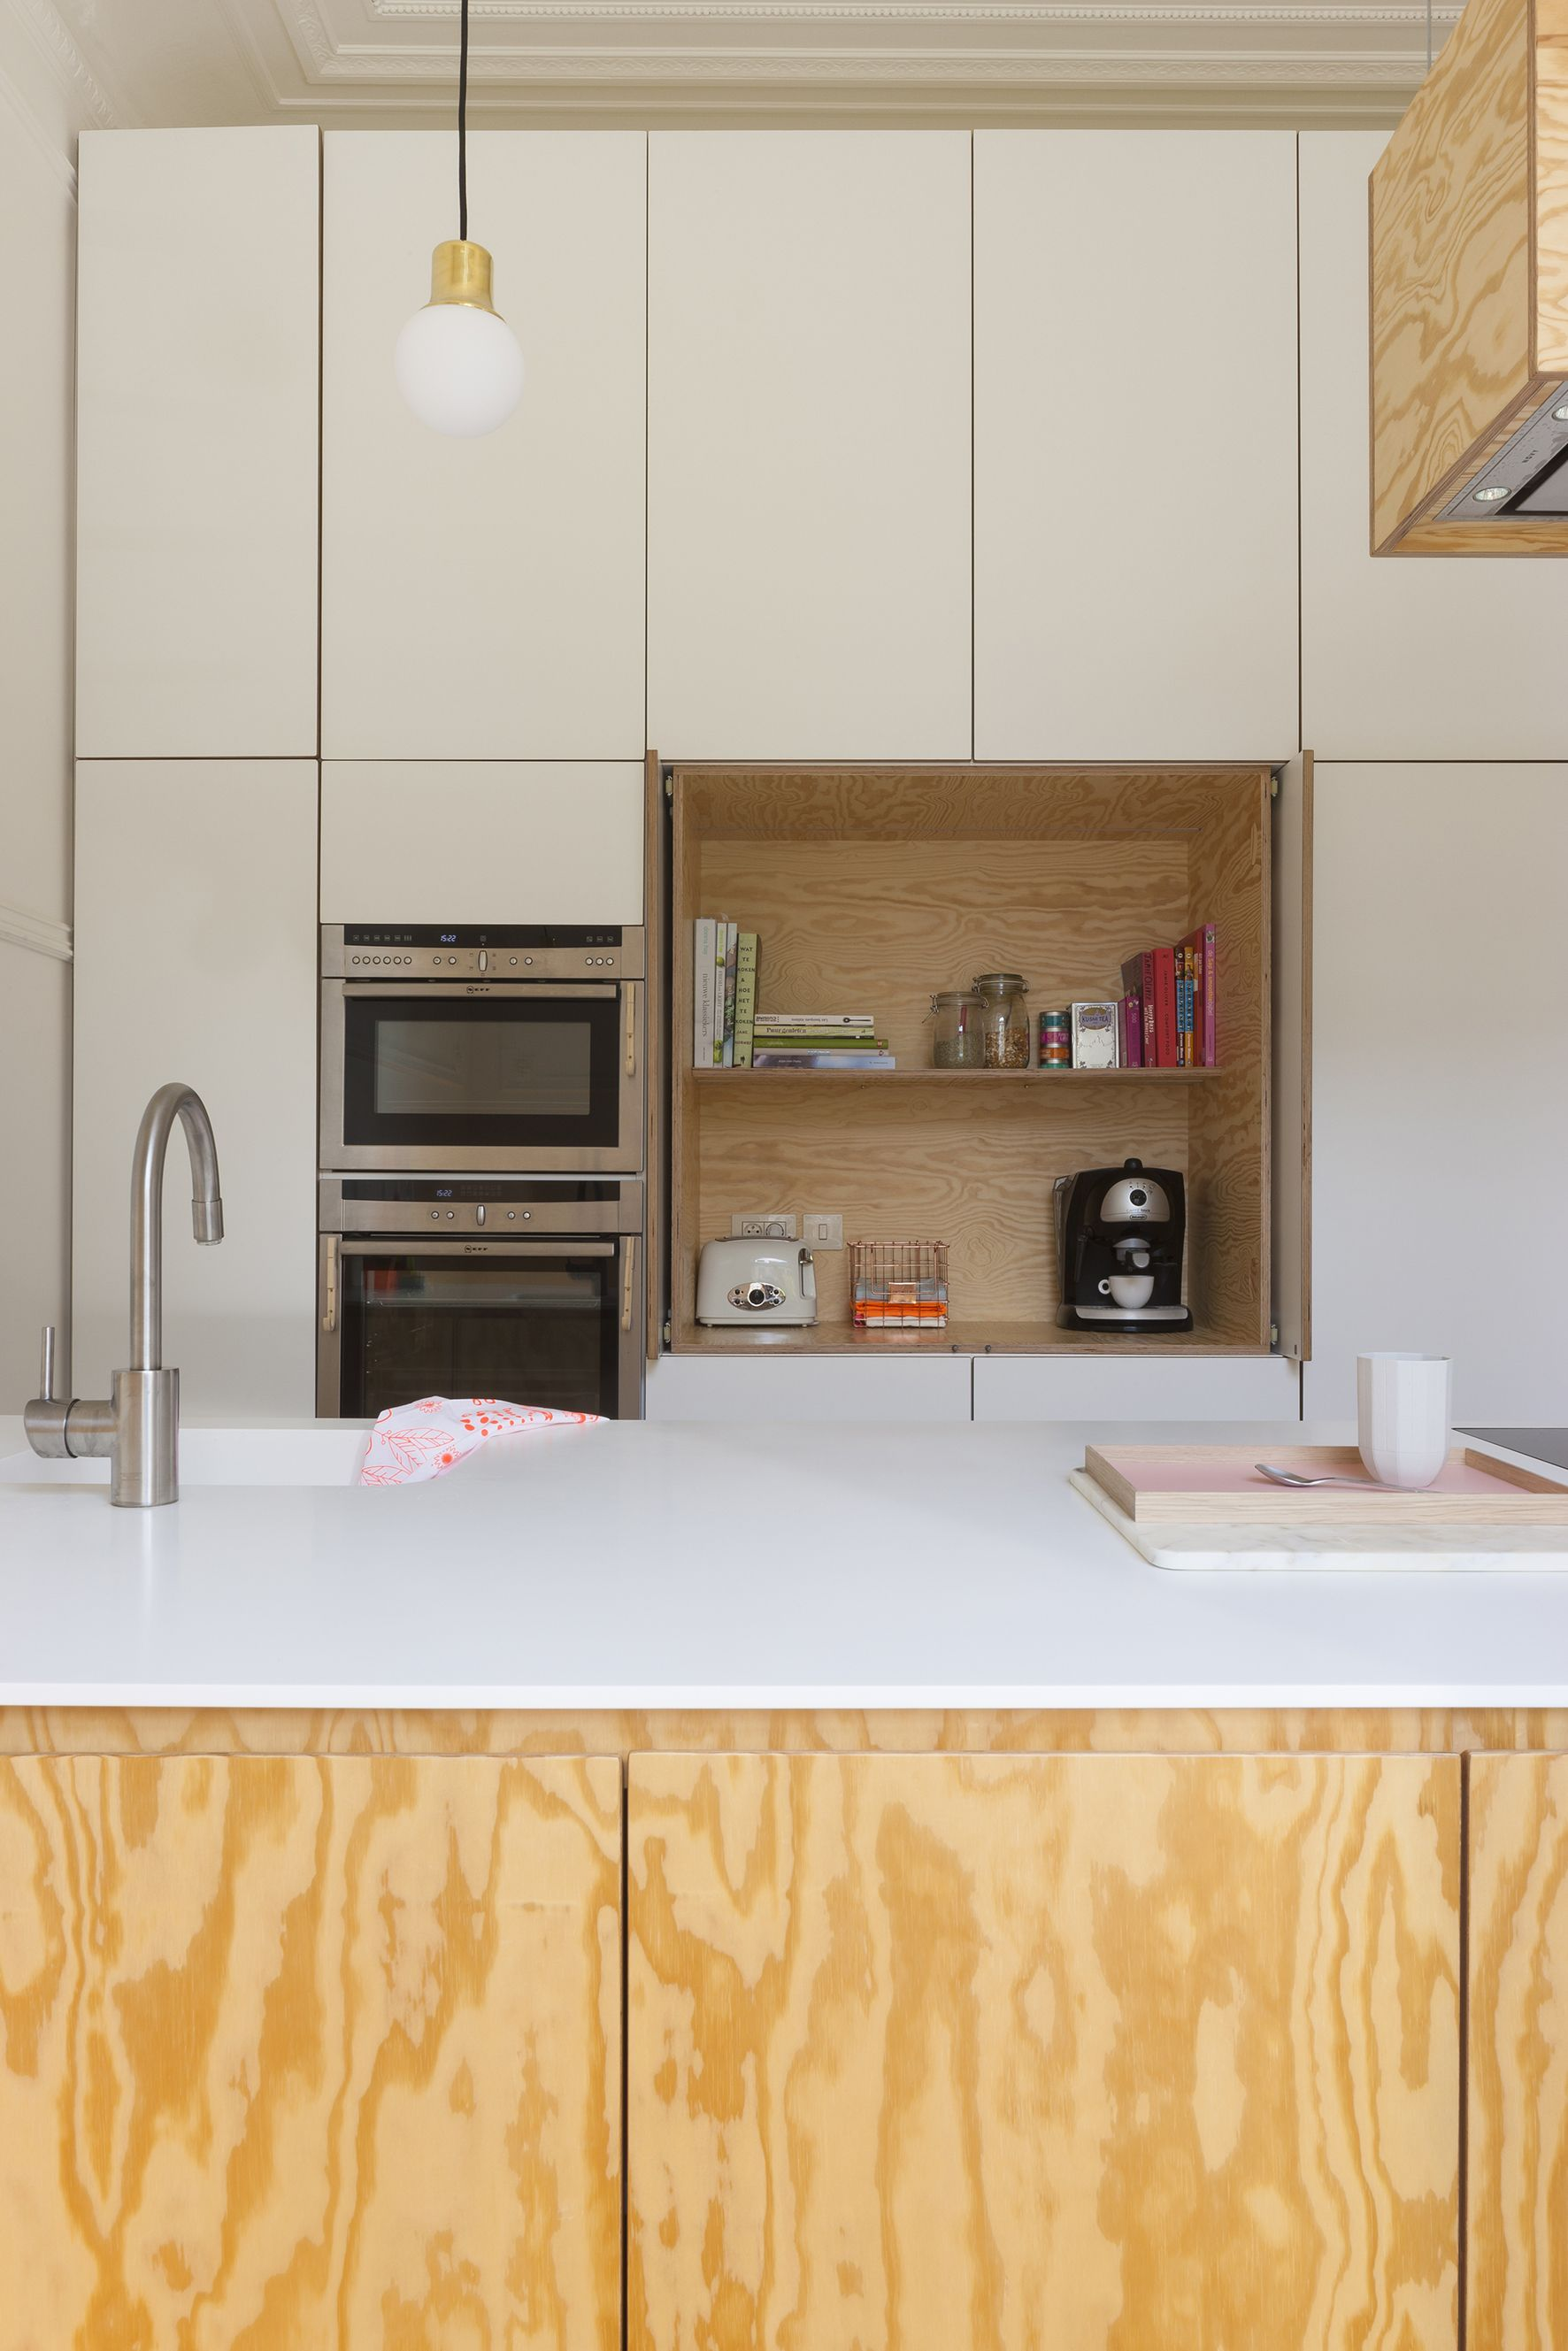 Keuken Art Deco Magmarchitecten Be Art Deco Vs Loft Kitchen In 2019